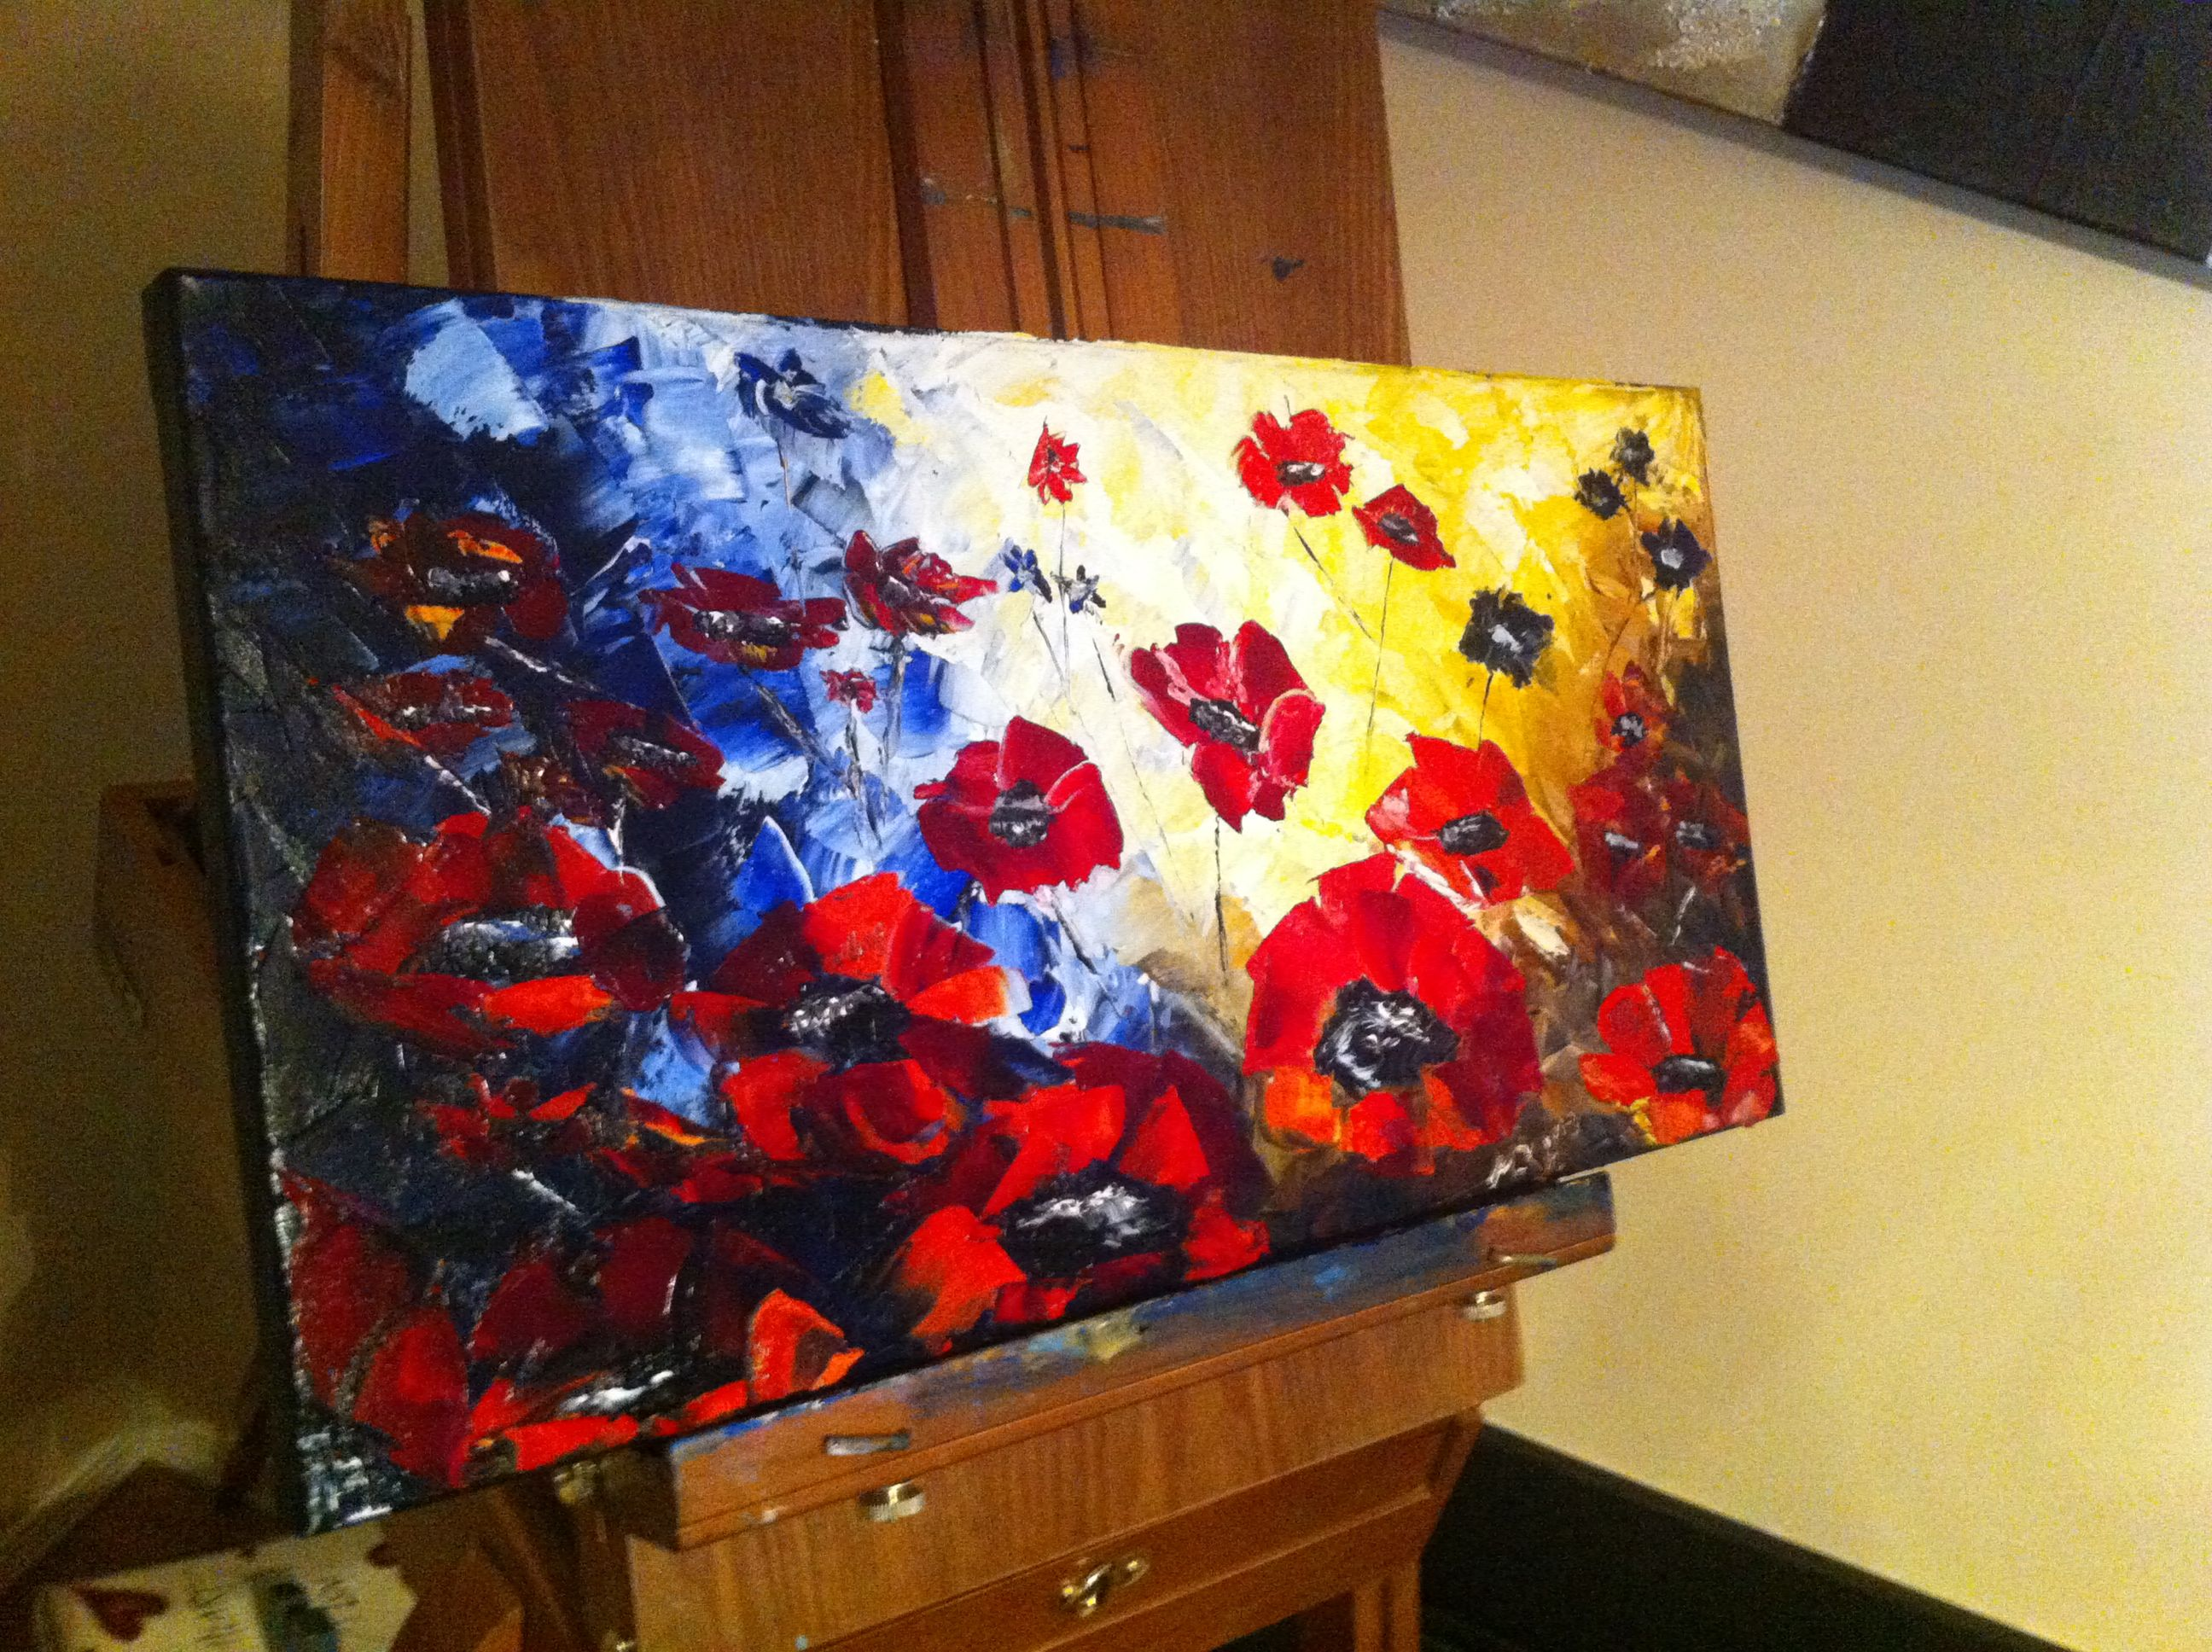 Palette knife painting by M.K. Harrigan Artistic Vision